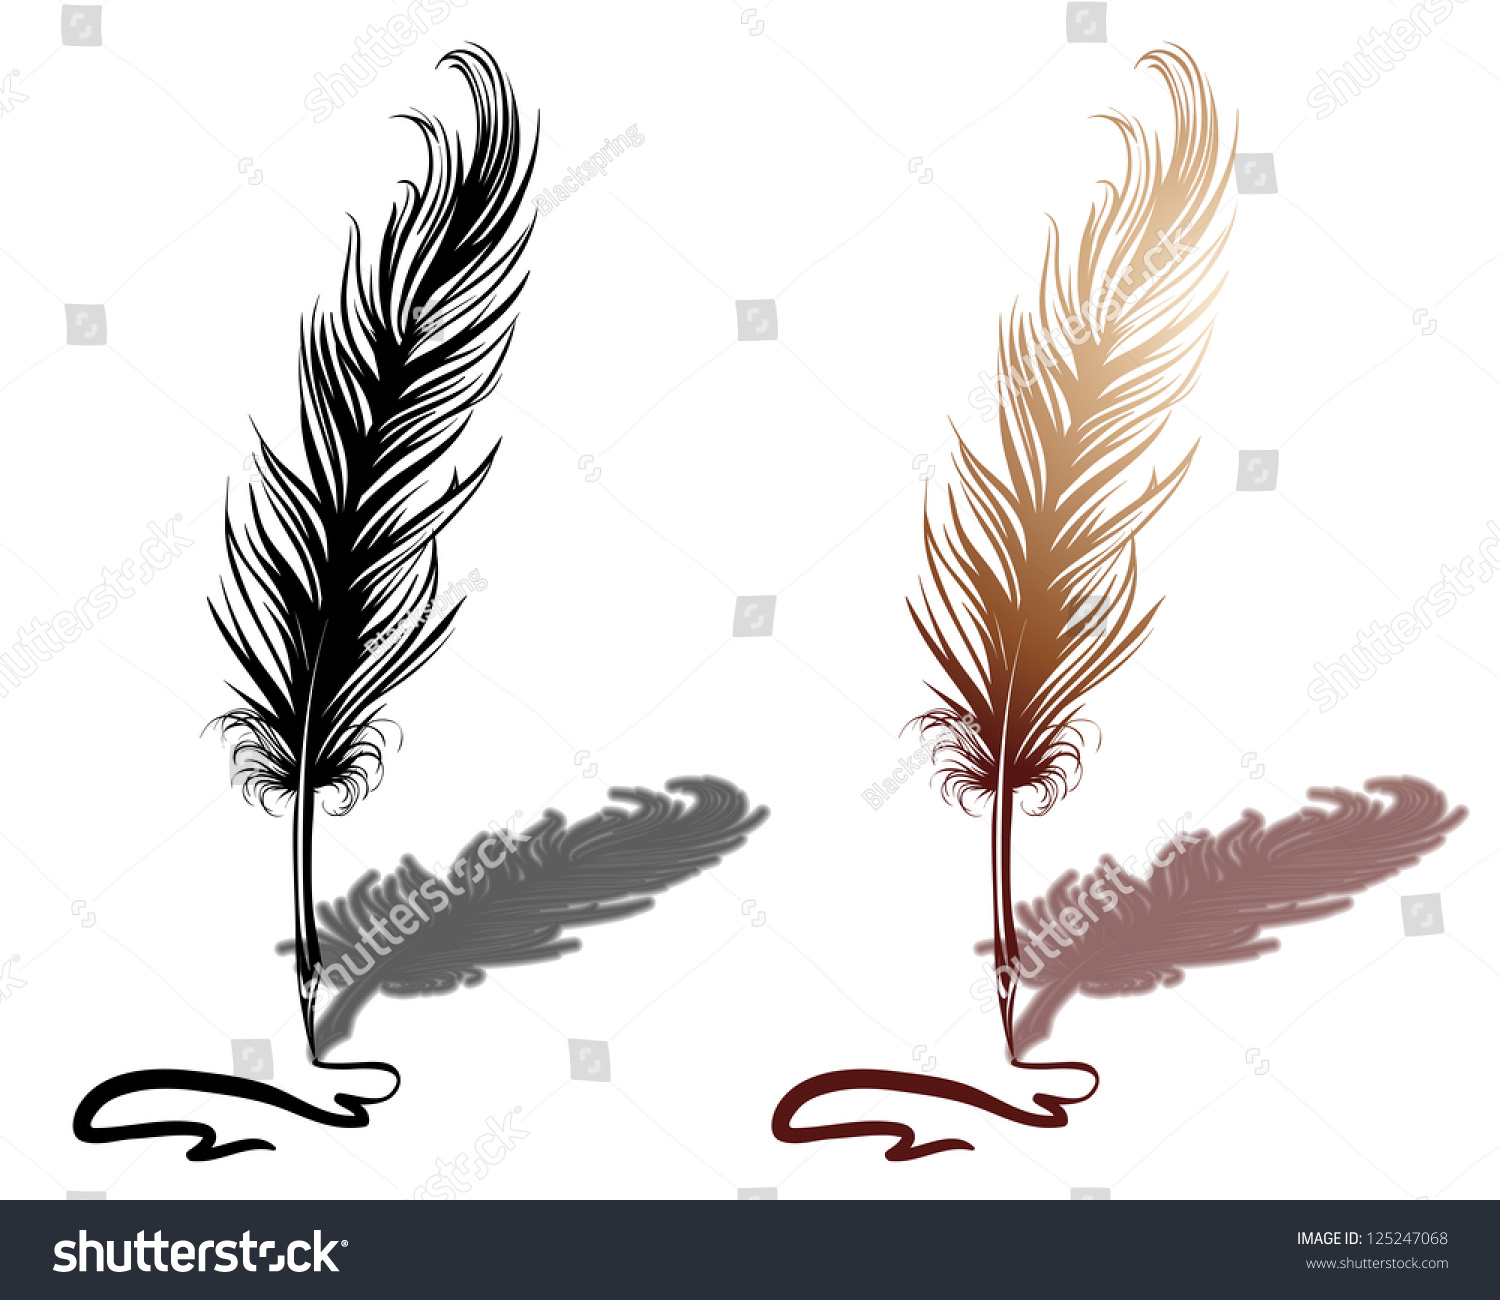 Line Drawing Of Quill : Quill with drawn line stock vector illustration